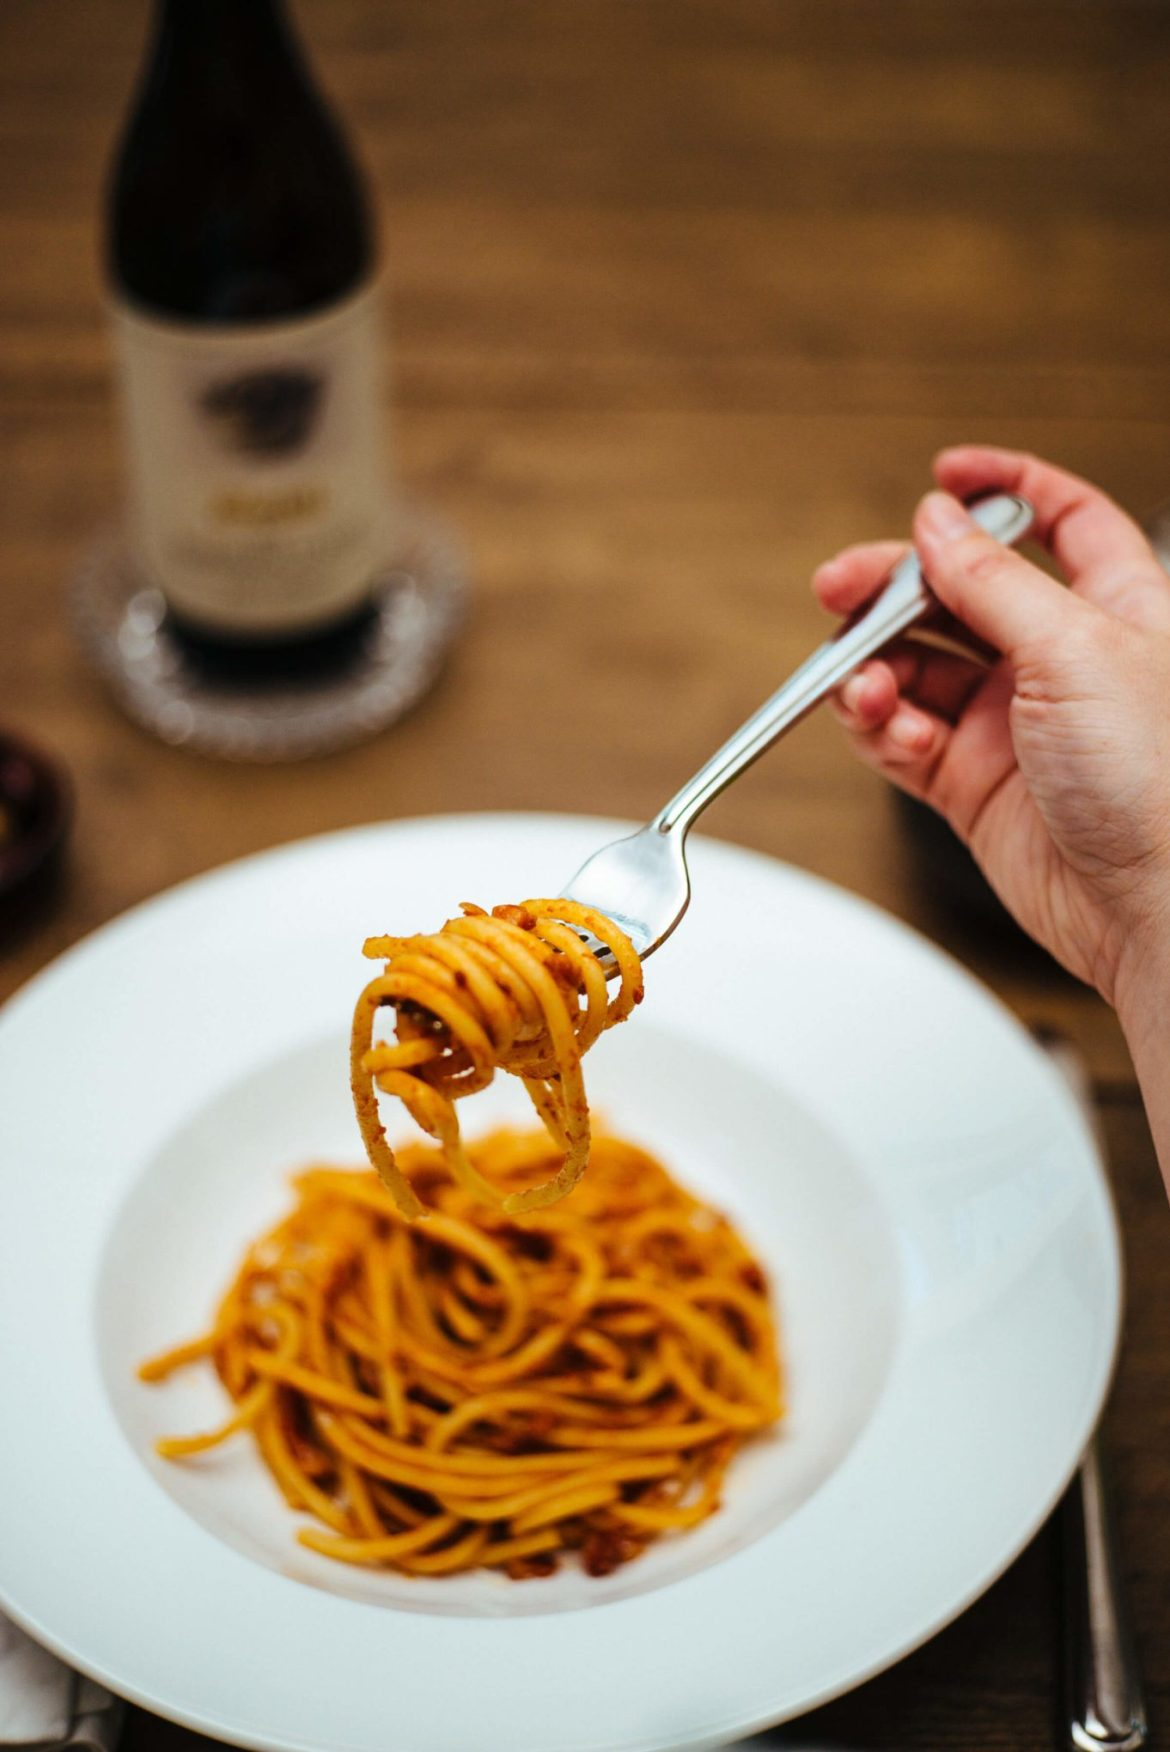 Eating pasta from rome and central italy The Taste Edit eats pasta all'amatriciana made with pancetta, bacon, or guanciale, tomatoes, and pasta